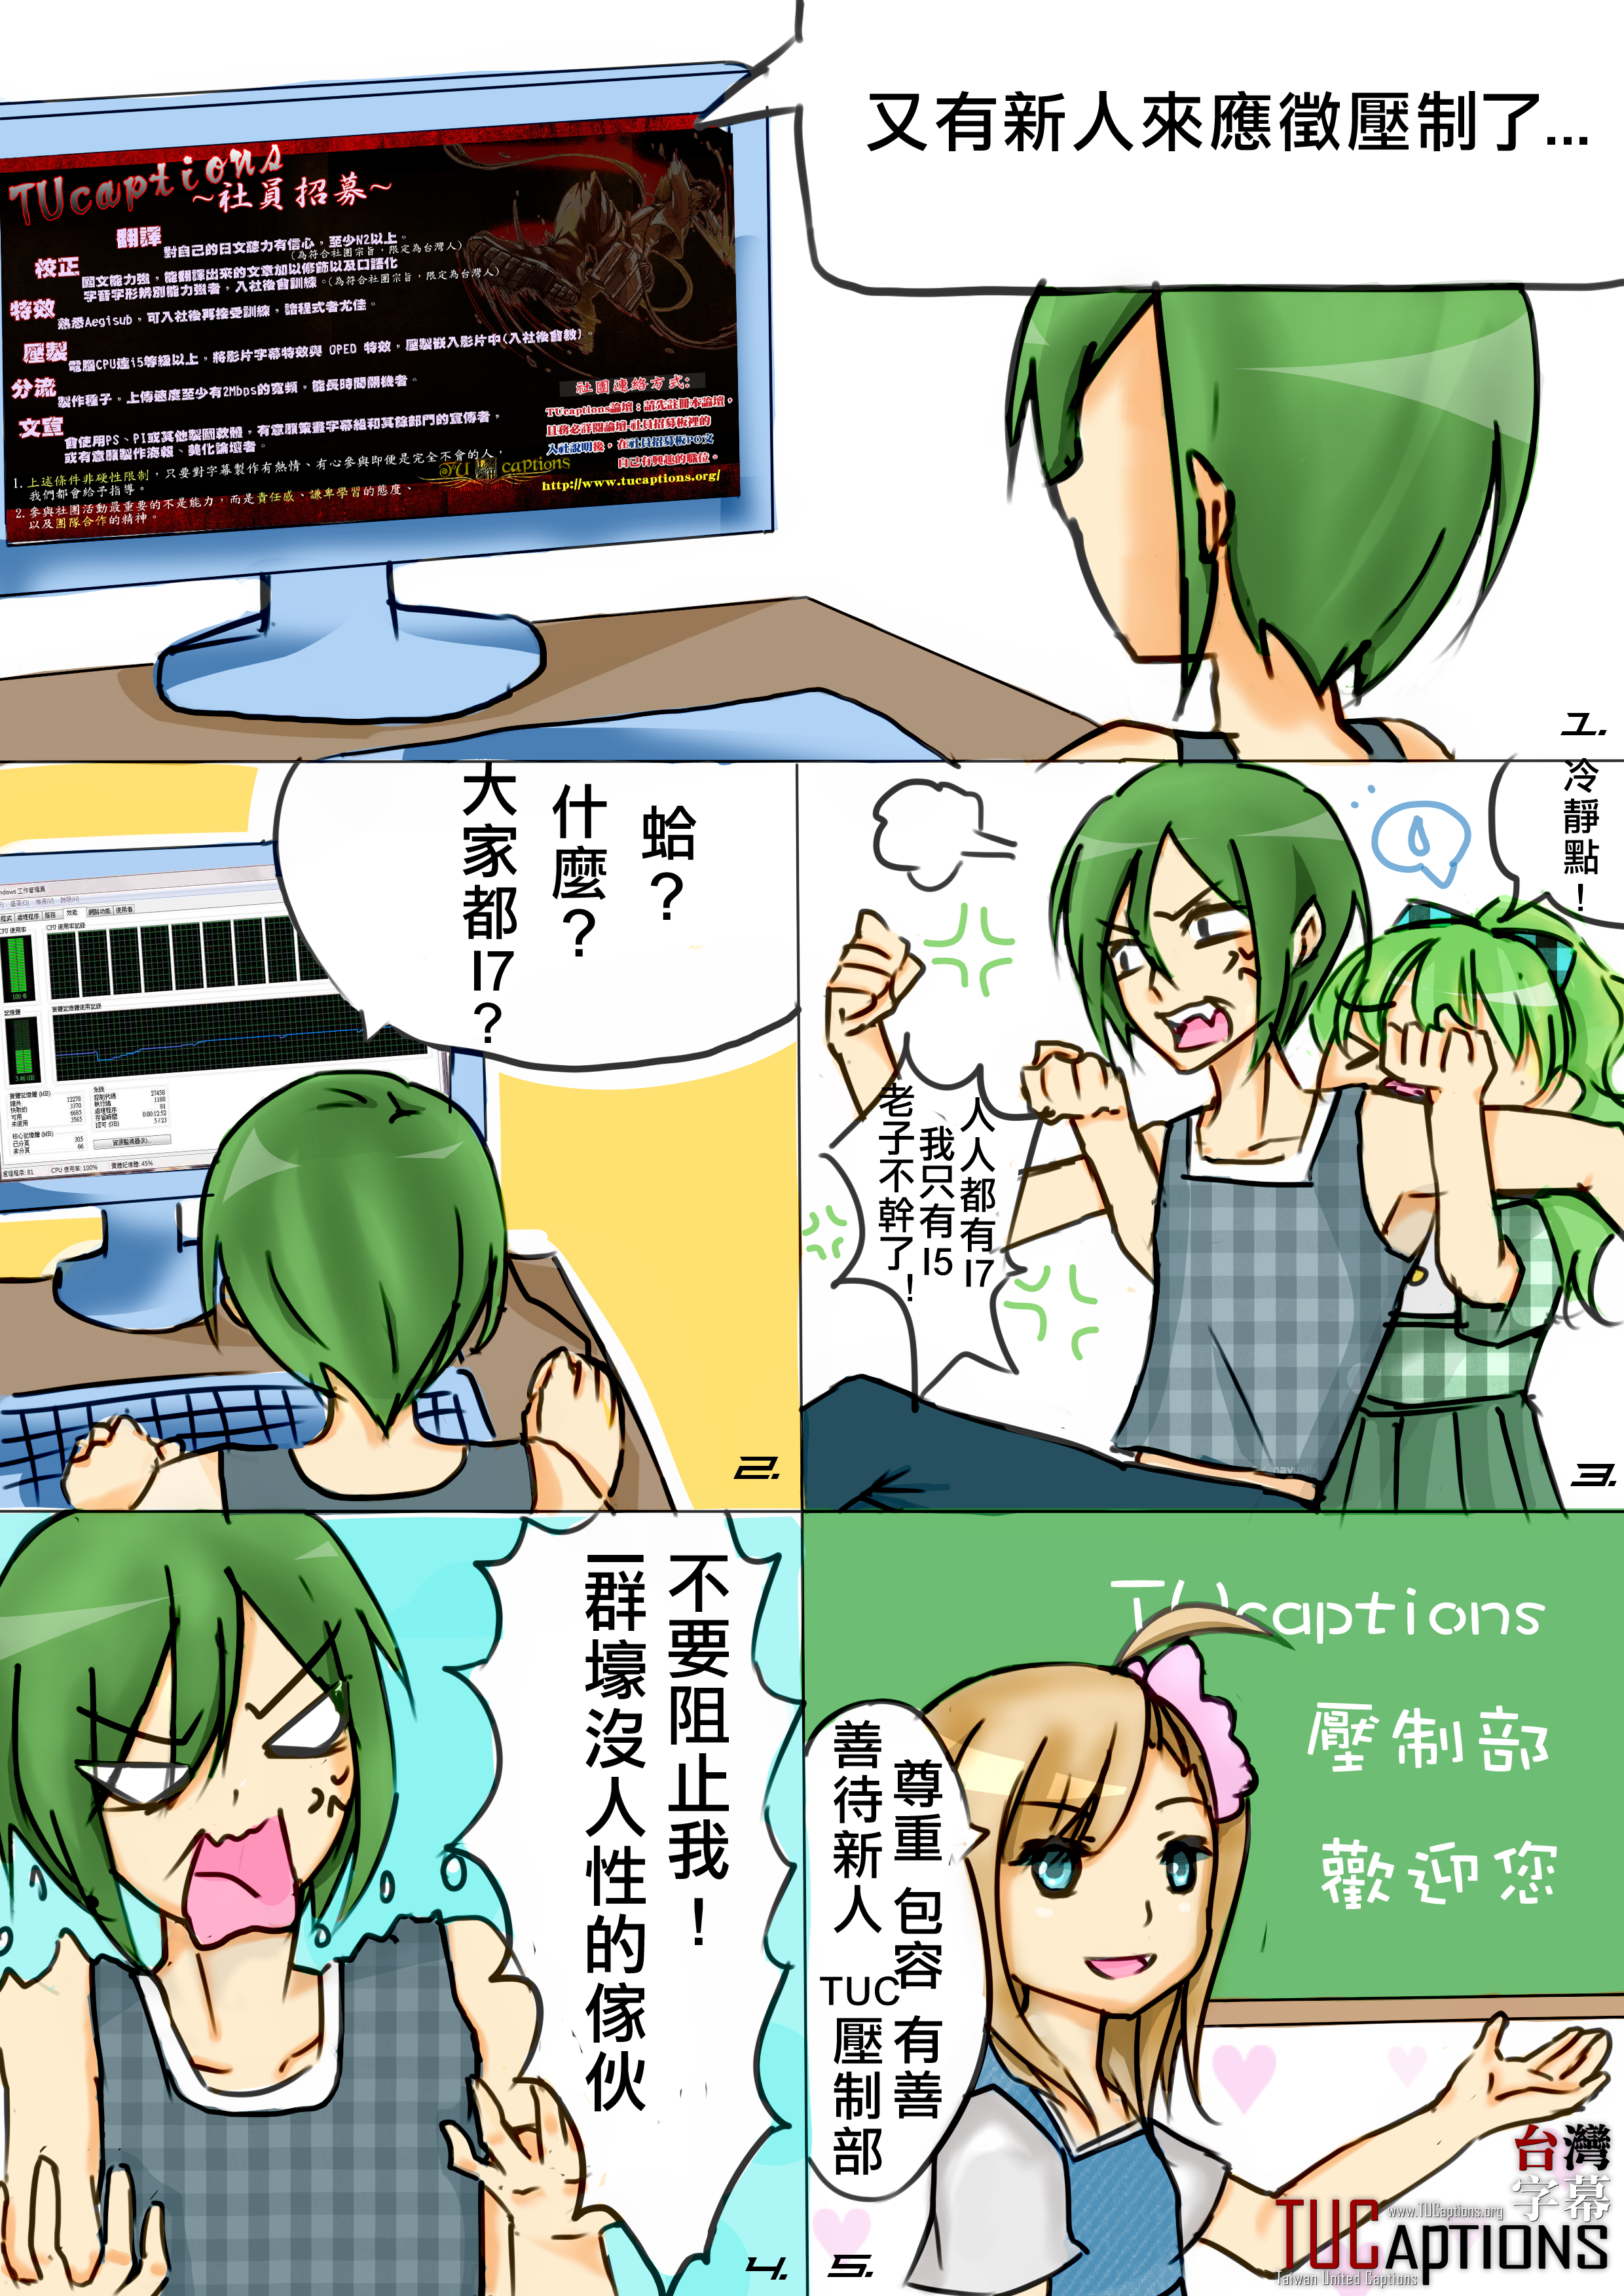 http://pics.tucaptions.org/TUC-encoding.png